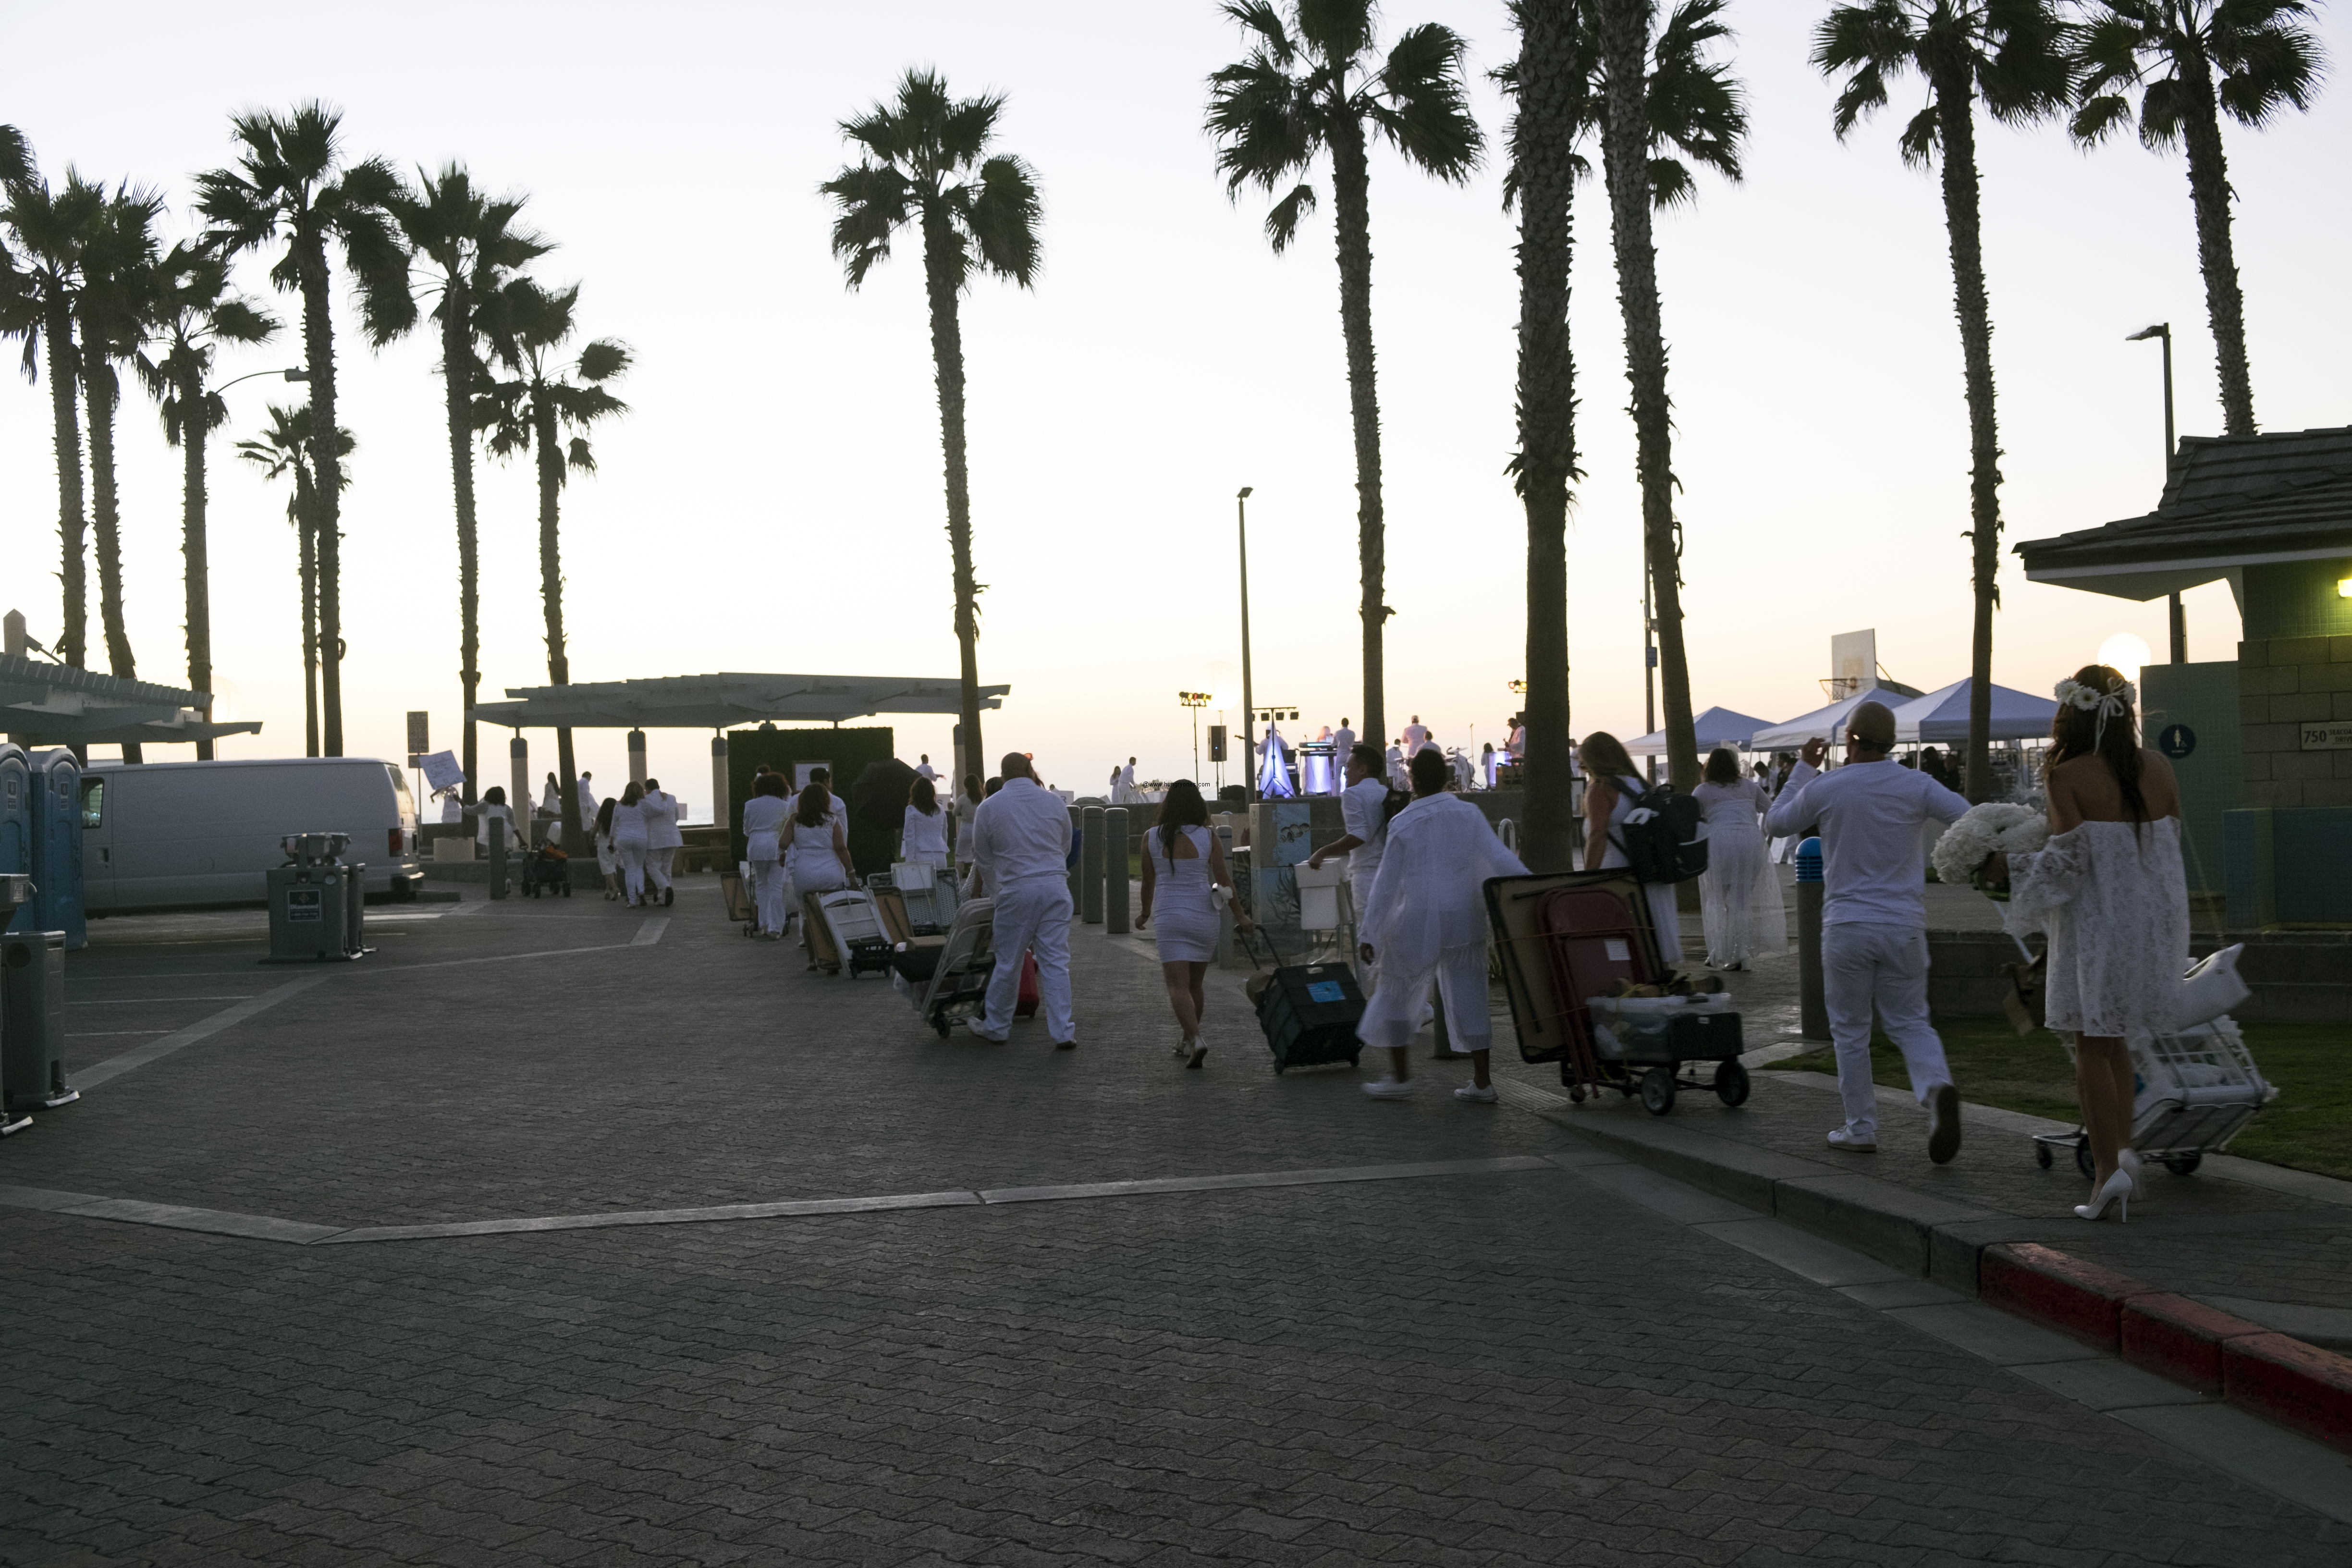 le-diner-en-blanc-and-apothic-wine-all-white-beach-event-20163171